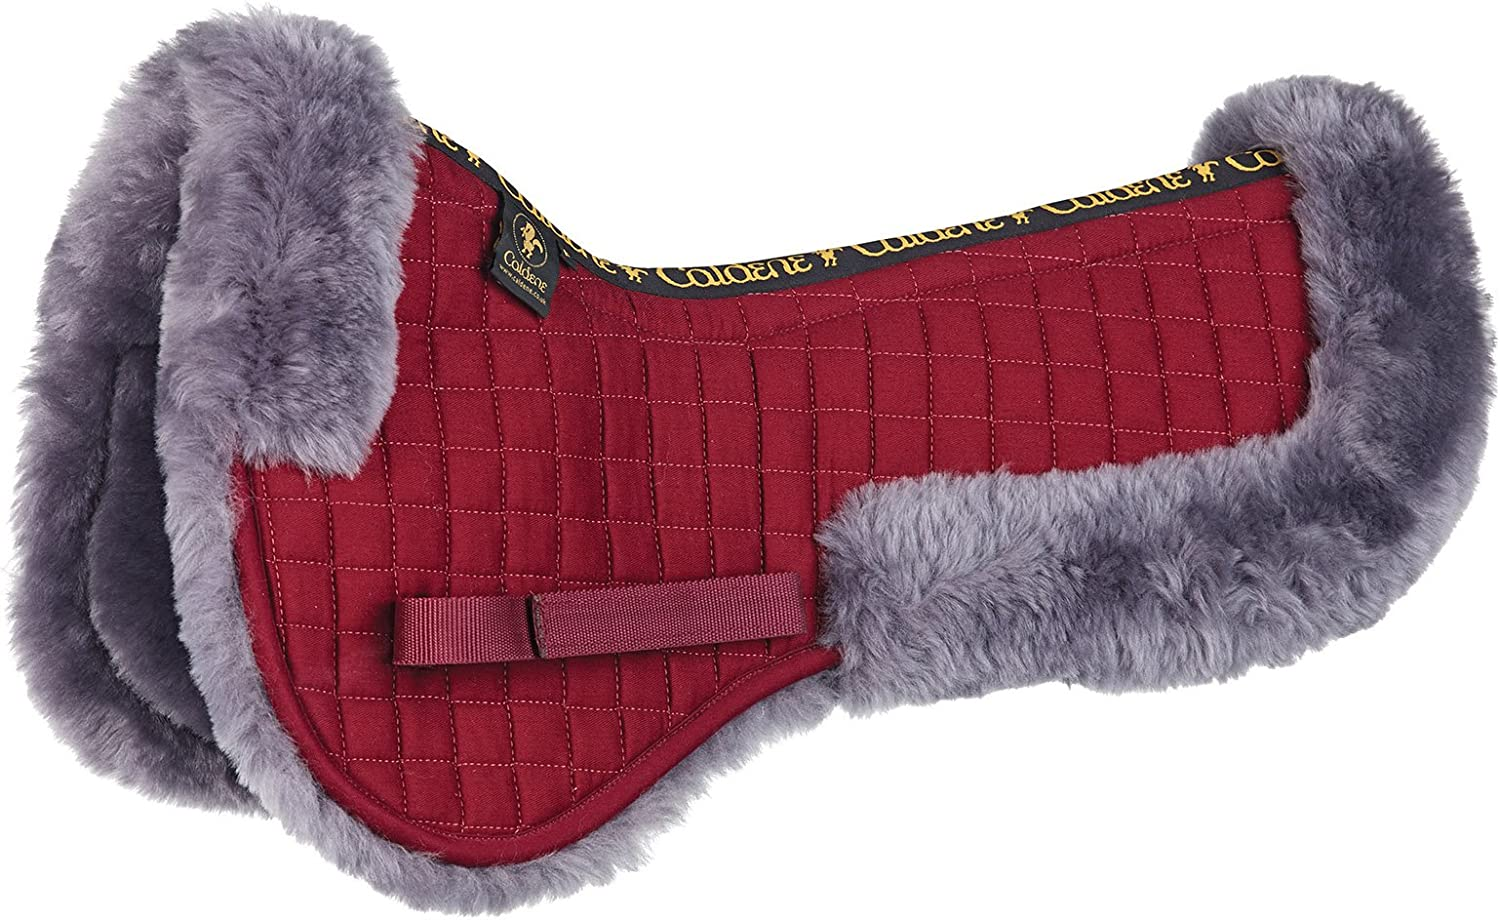 Caldene HKM Horse Riding Dressage General Purpose Competition Eventing Showing Olympics Country Flag Saddle Cloth Numnah